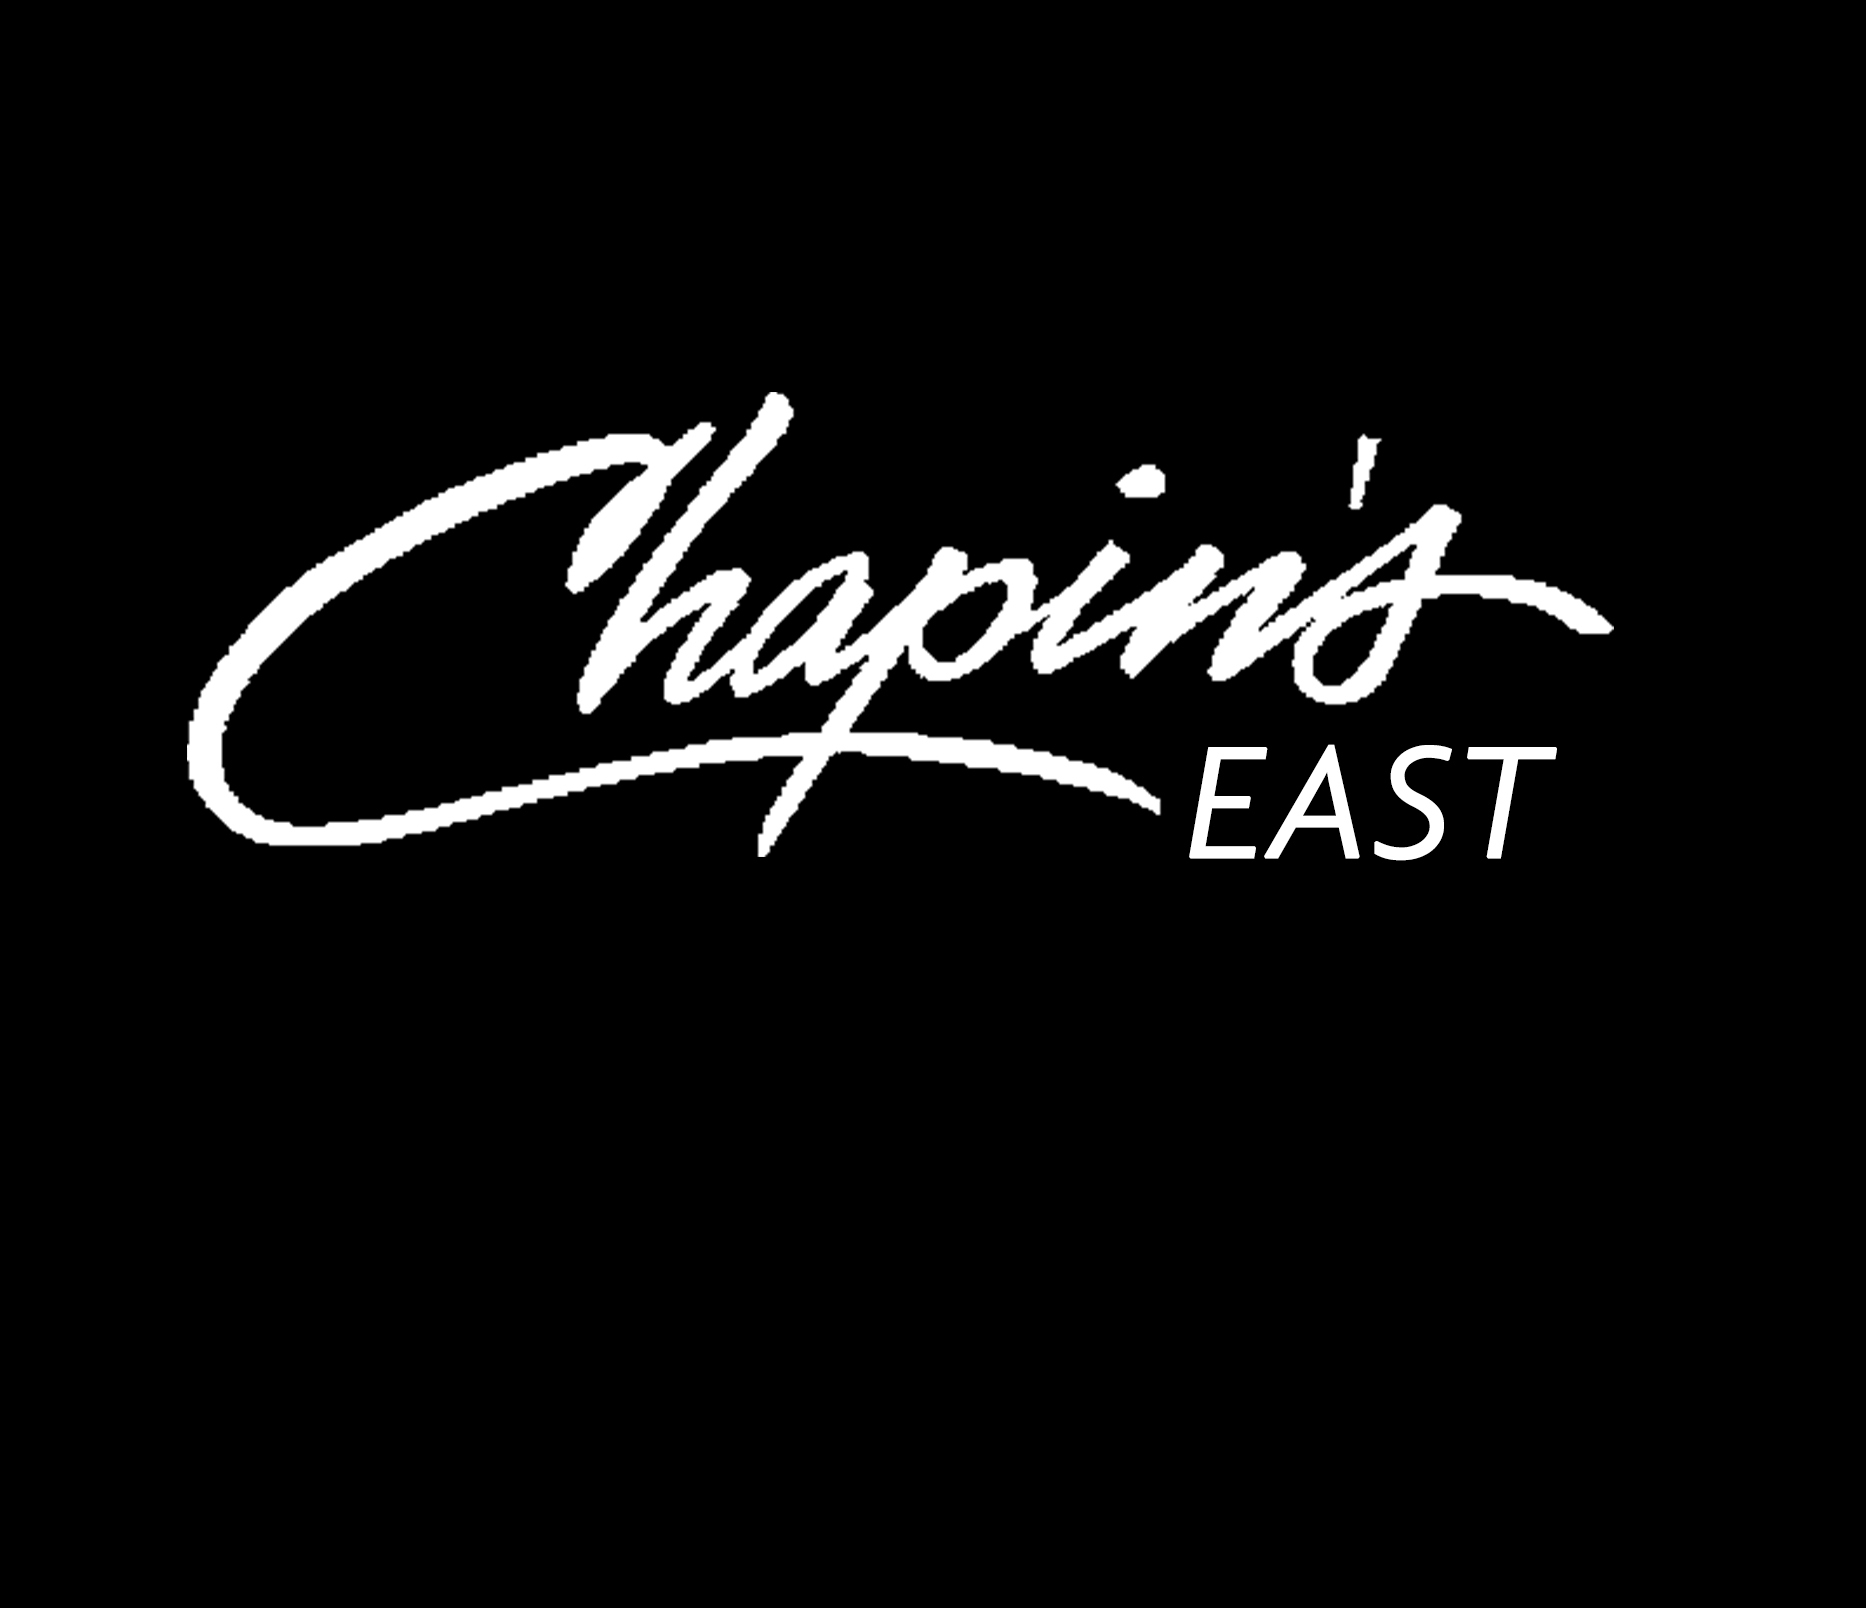 Chapin's East Banquets and Twin Rail Pub